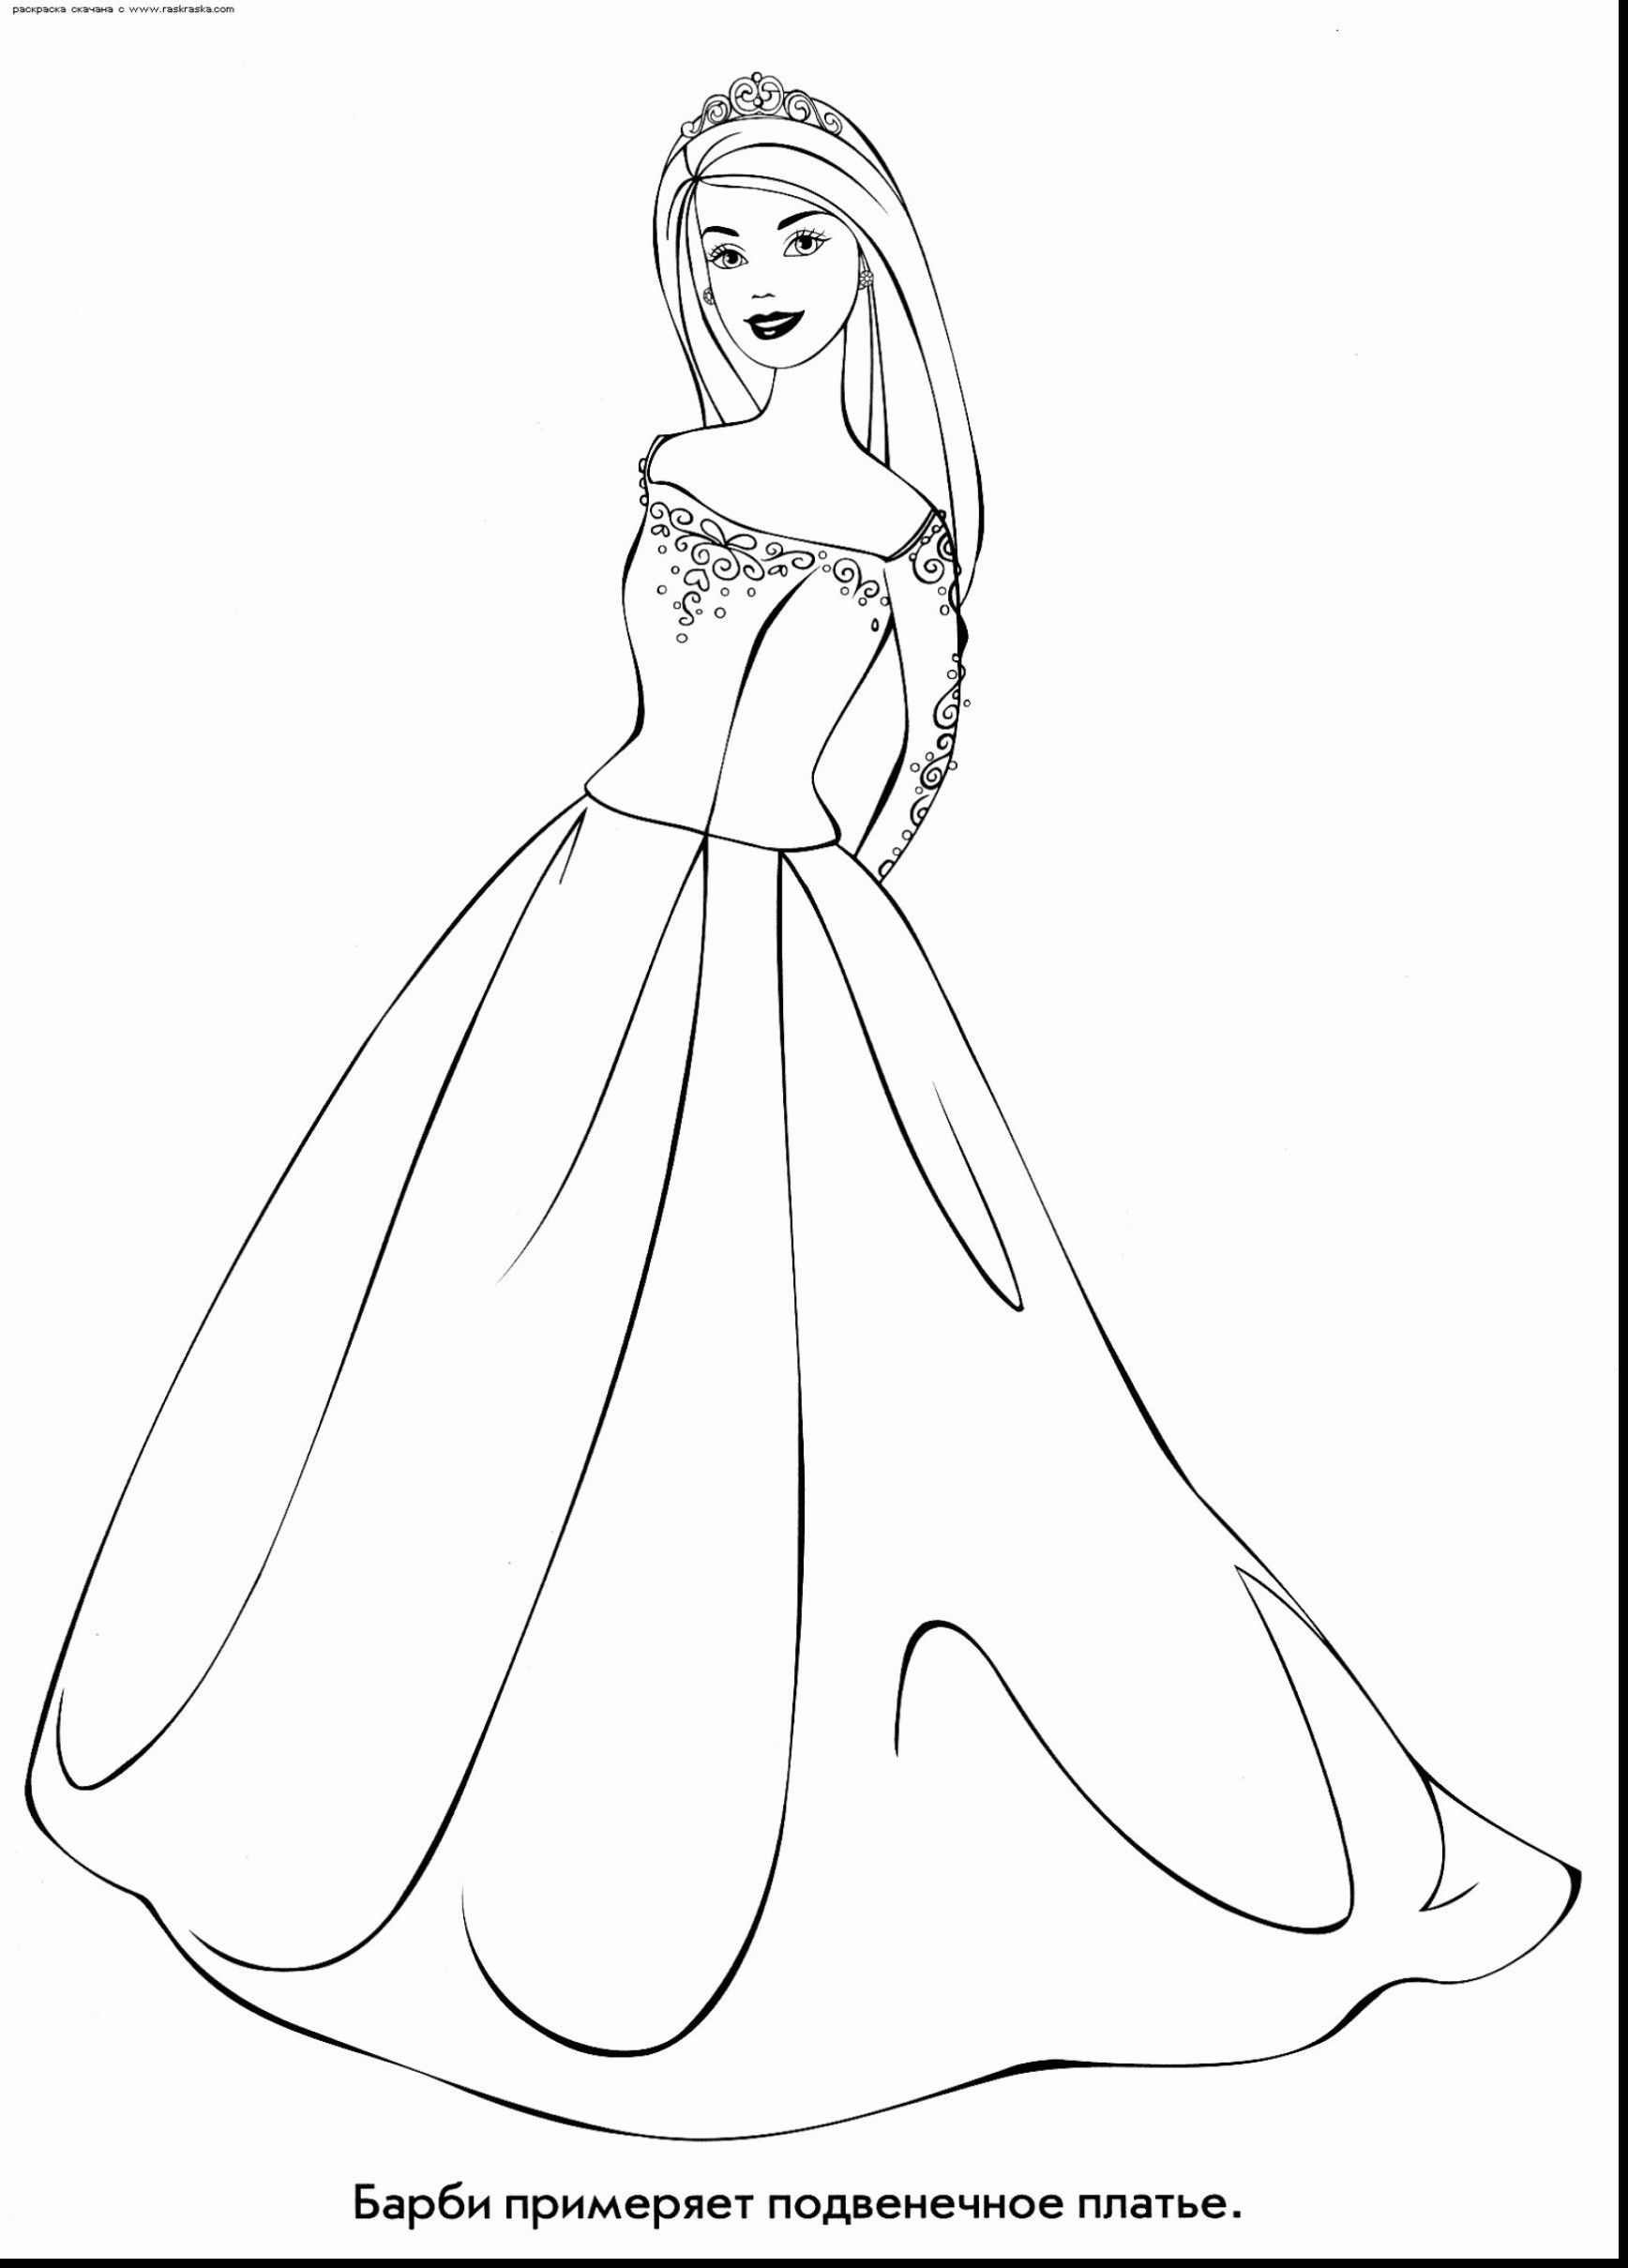 Barbie Wedding Coloring Pages From The Thousand Images On Line With Regards To Barbie Wedding Wedding Coloring Pages Princess Coloring Pages Barbie Coloring